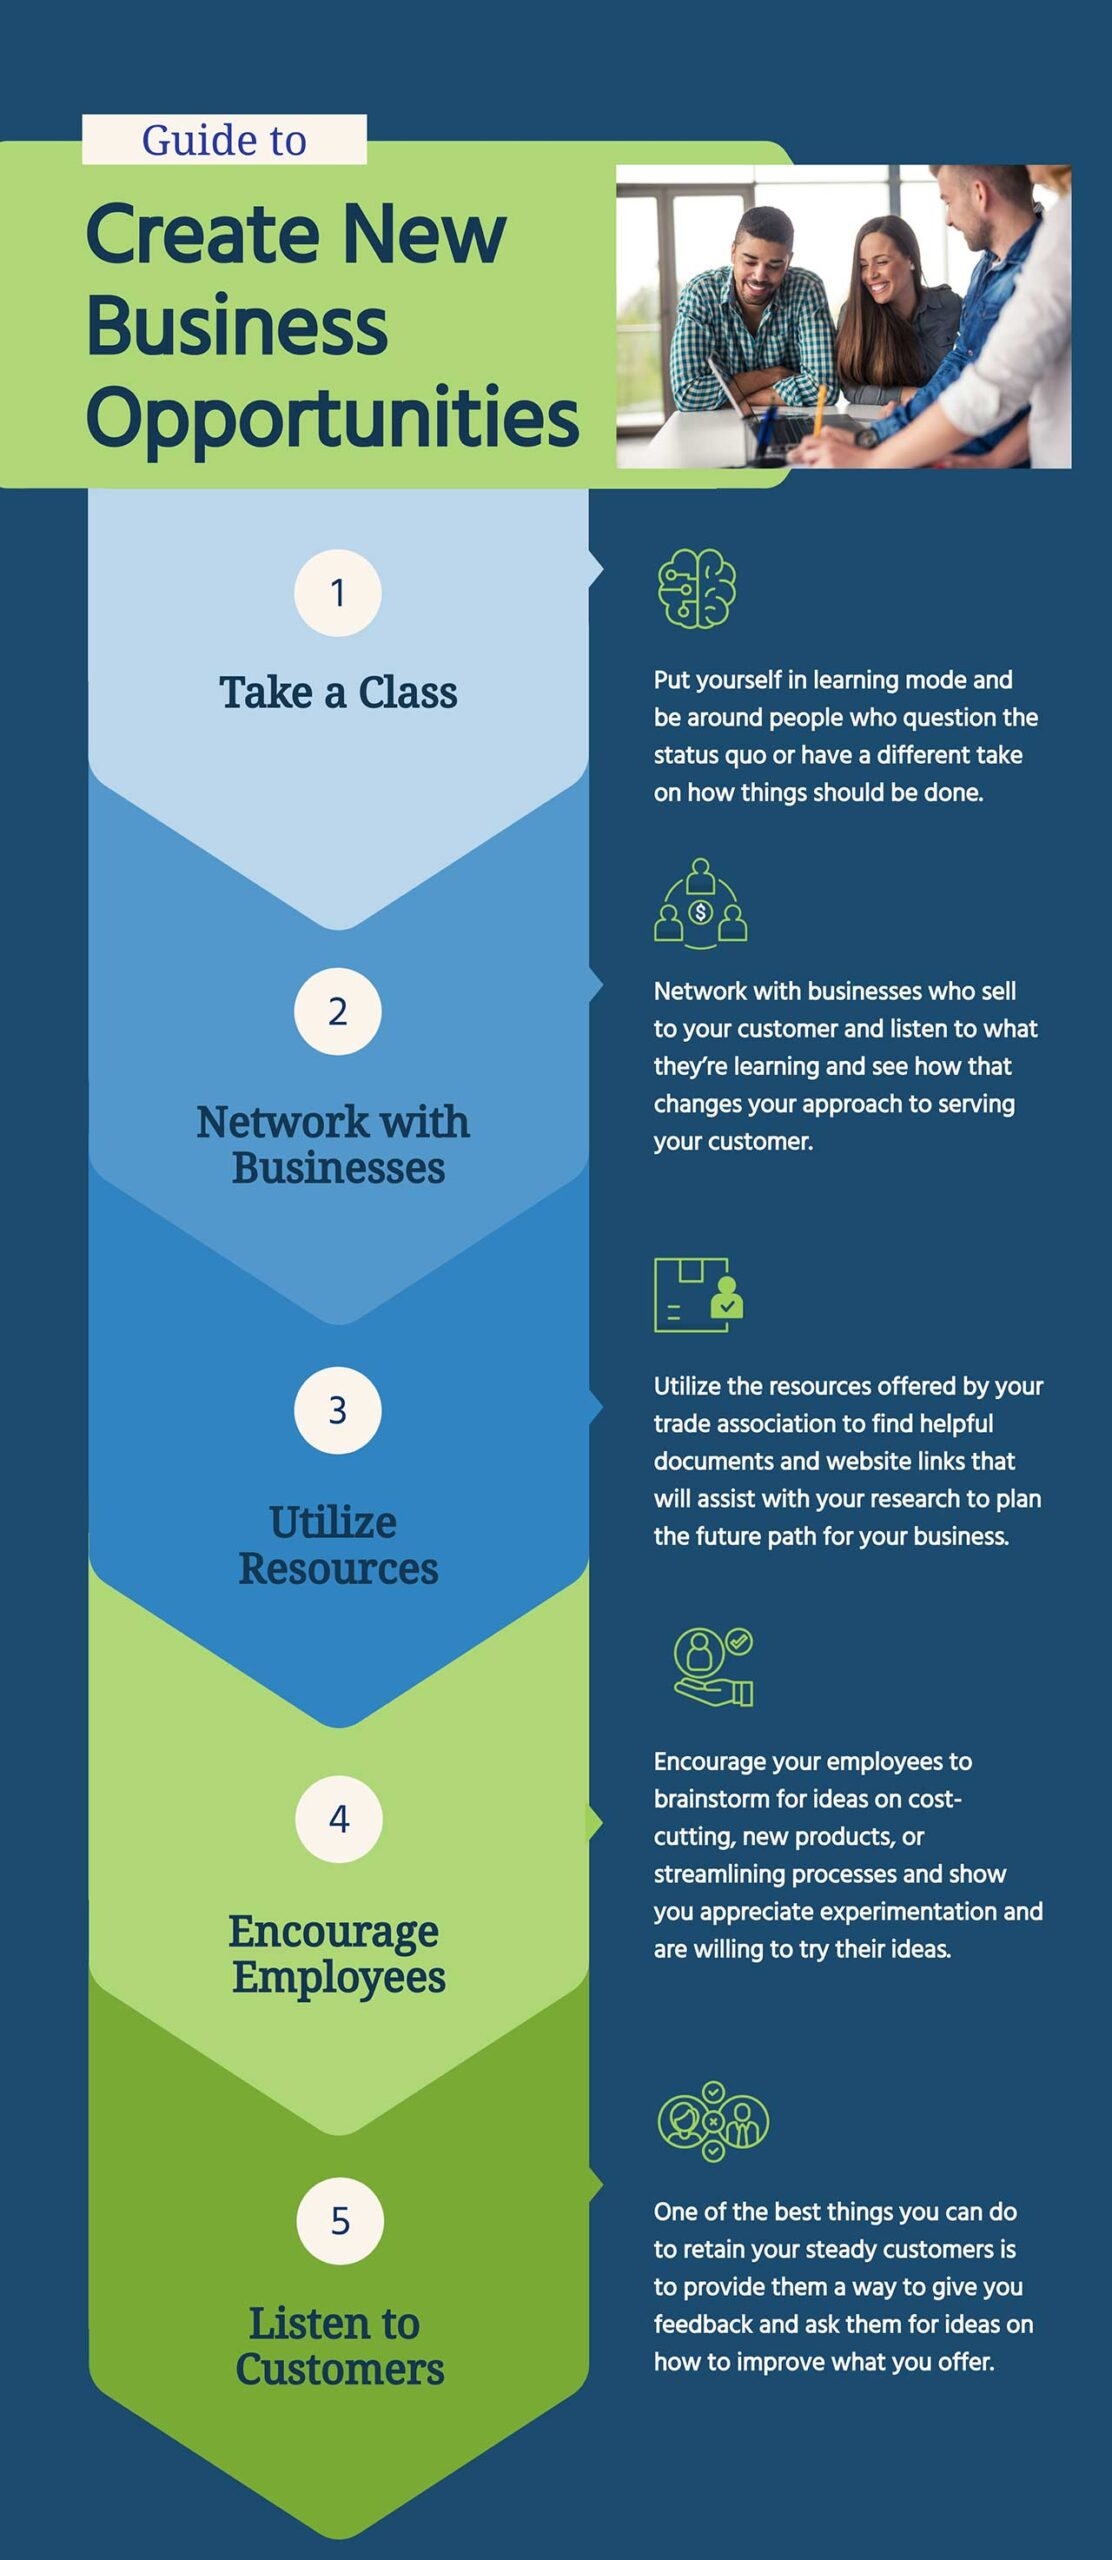 Guide to Creating New Business Opportunities